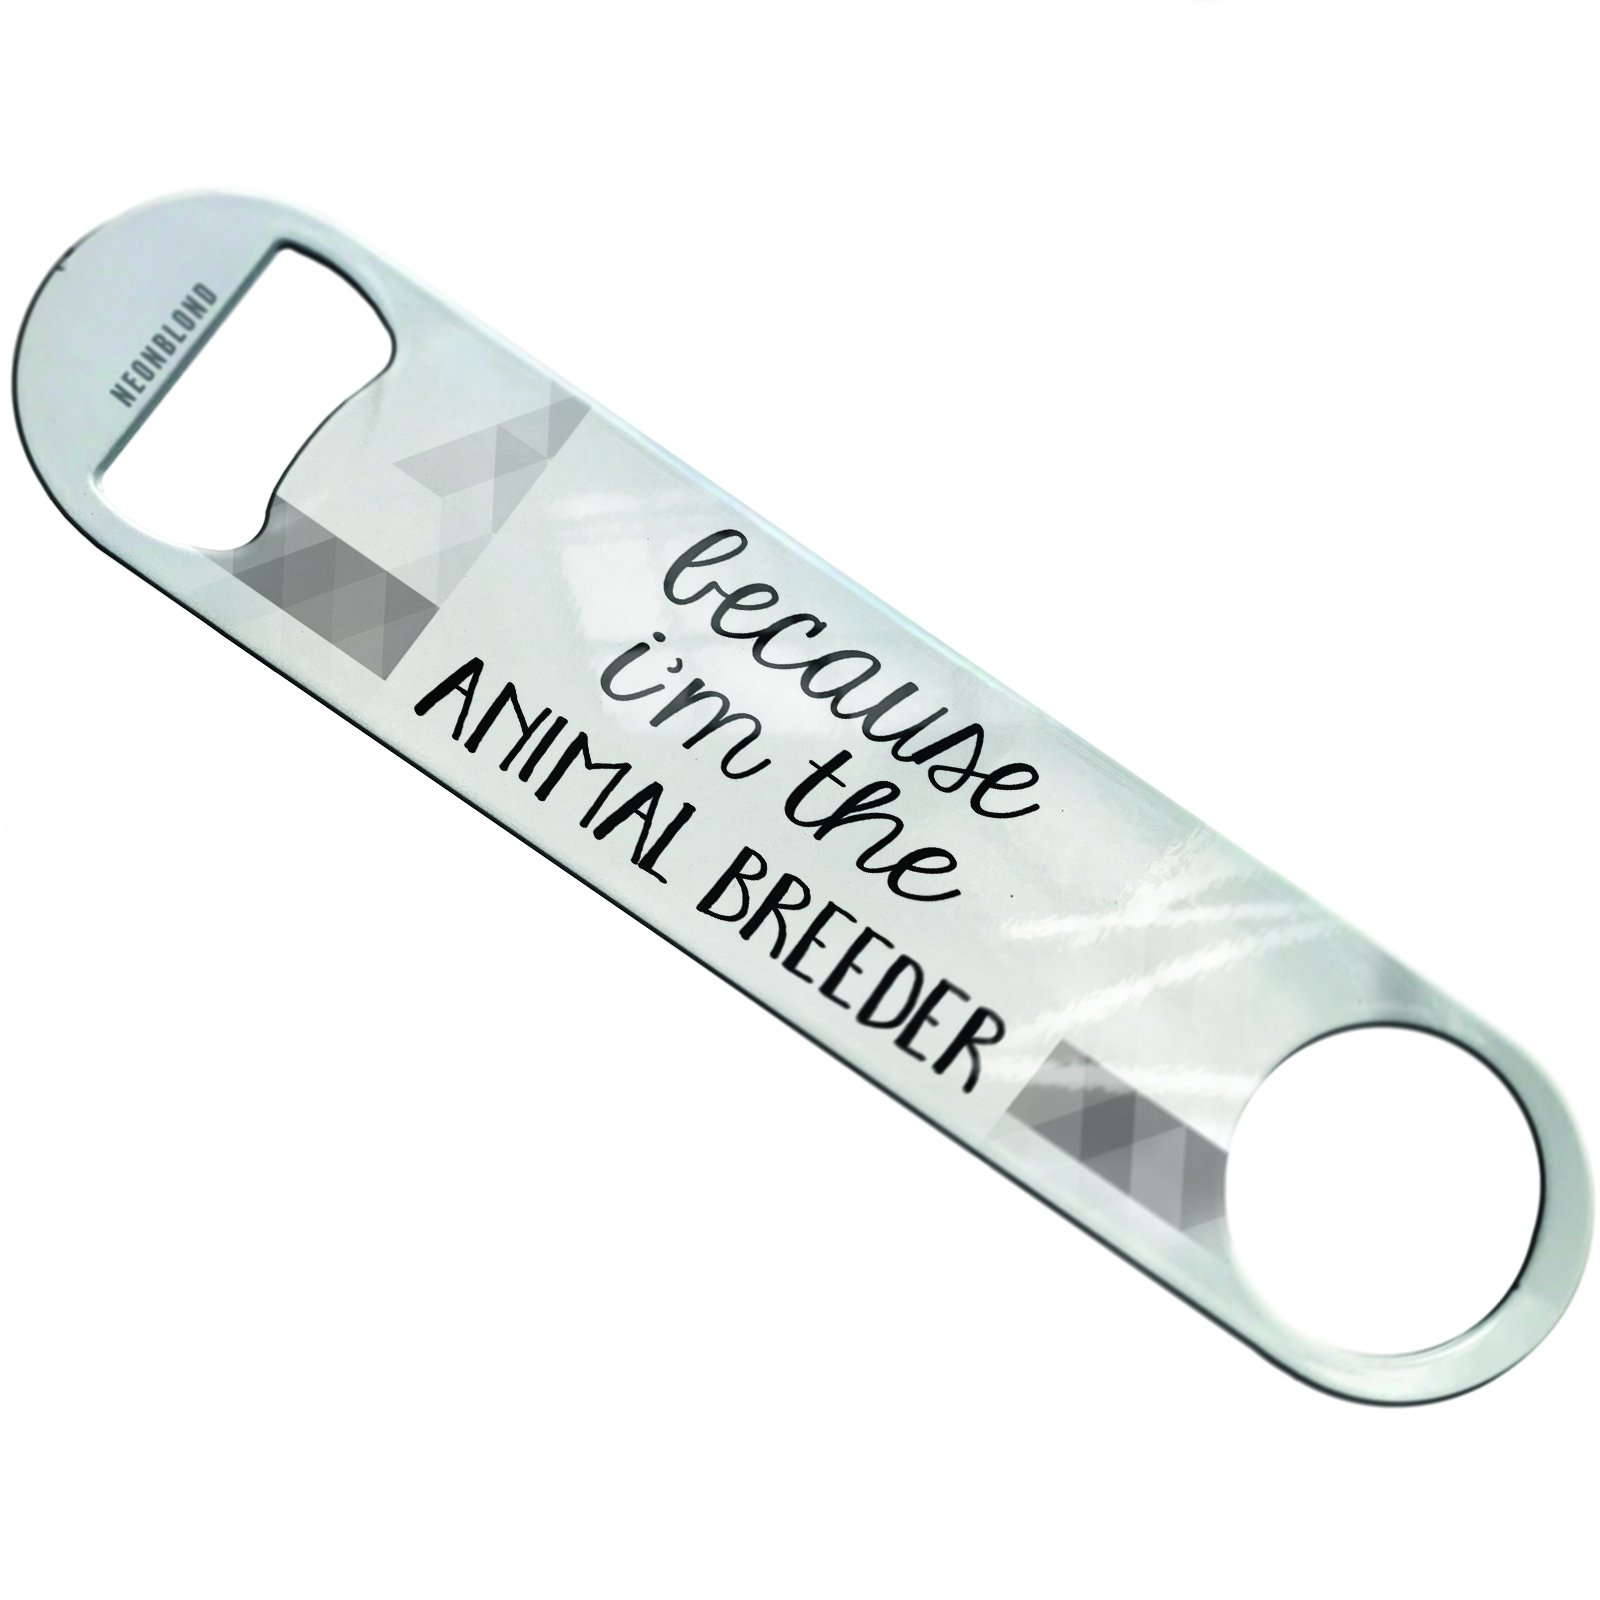 NEONBLOND Because I'm The Animal Breeder Funny Saying Flat Beer Bottle Opener Heavy Duty Bartender